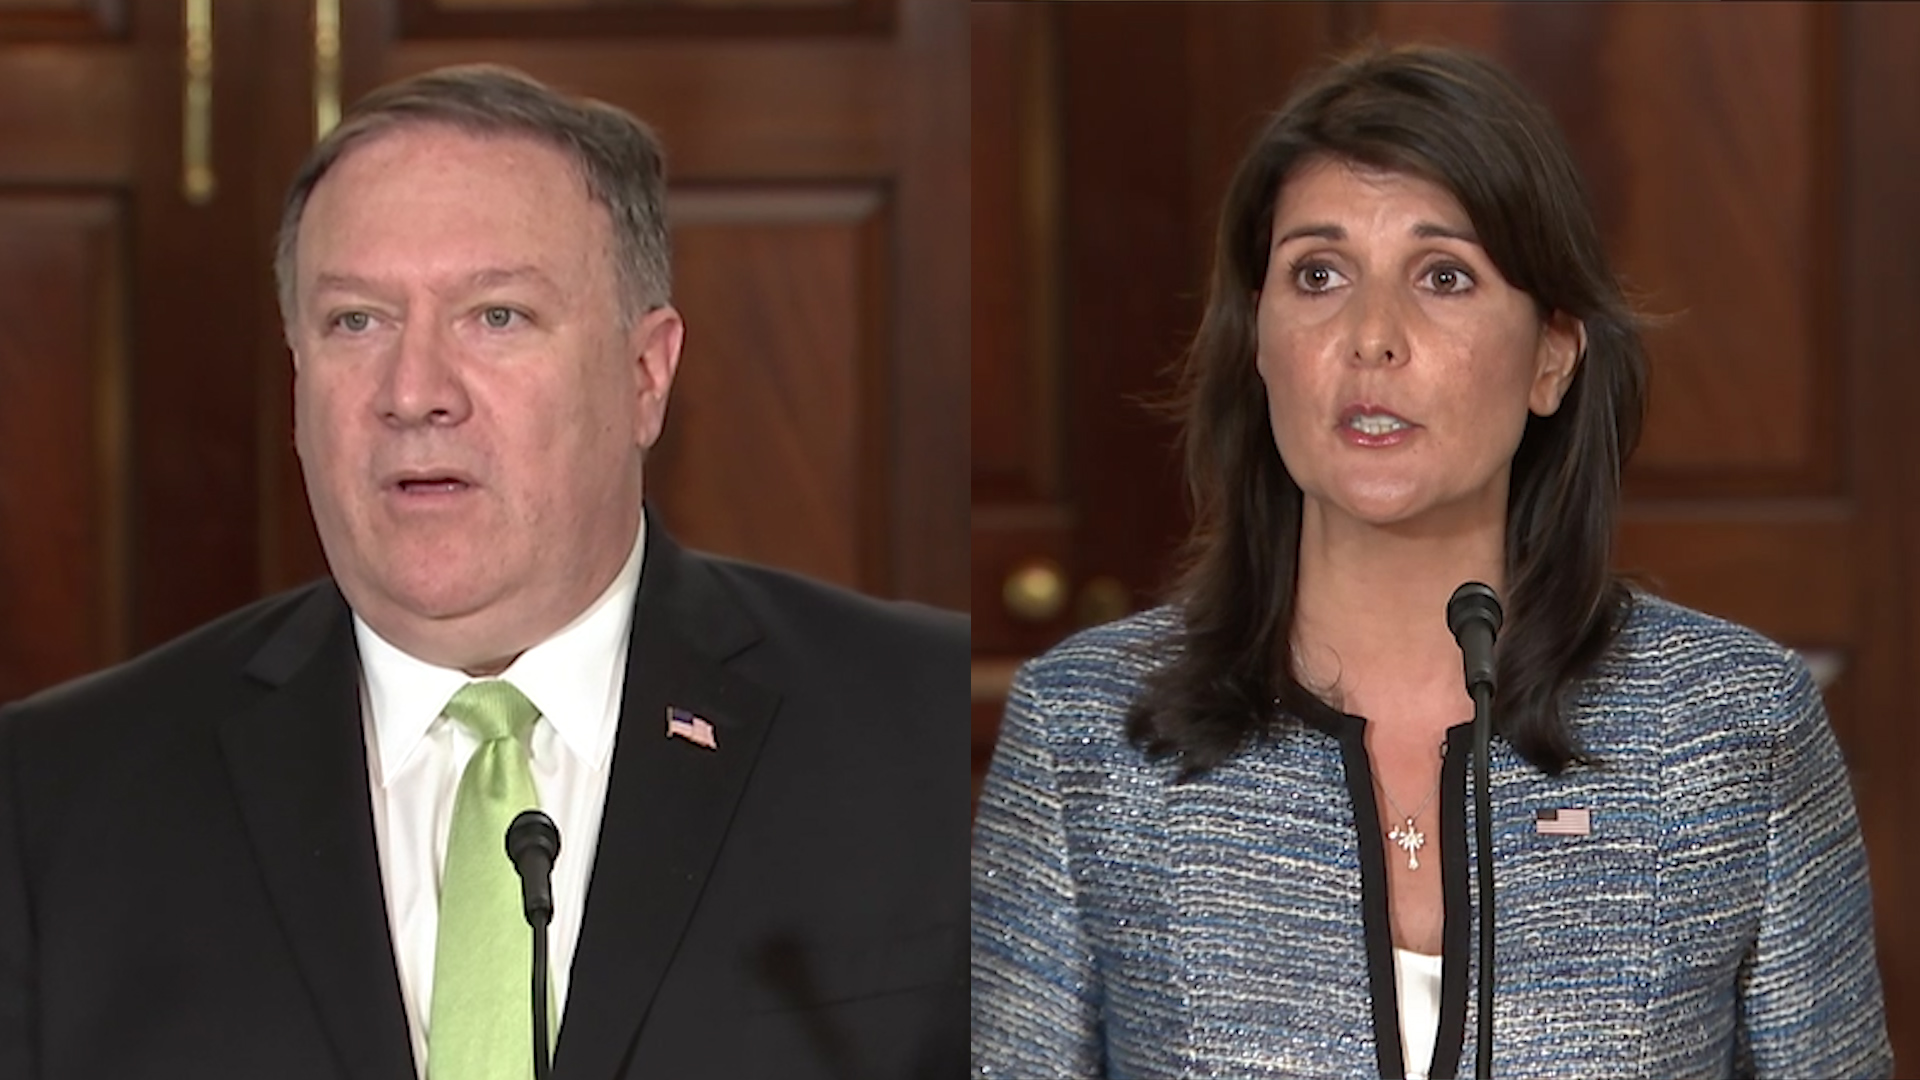 U.S. withdraws from U.N. Human Rights Council over perceived bias against Israel